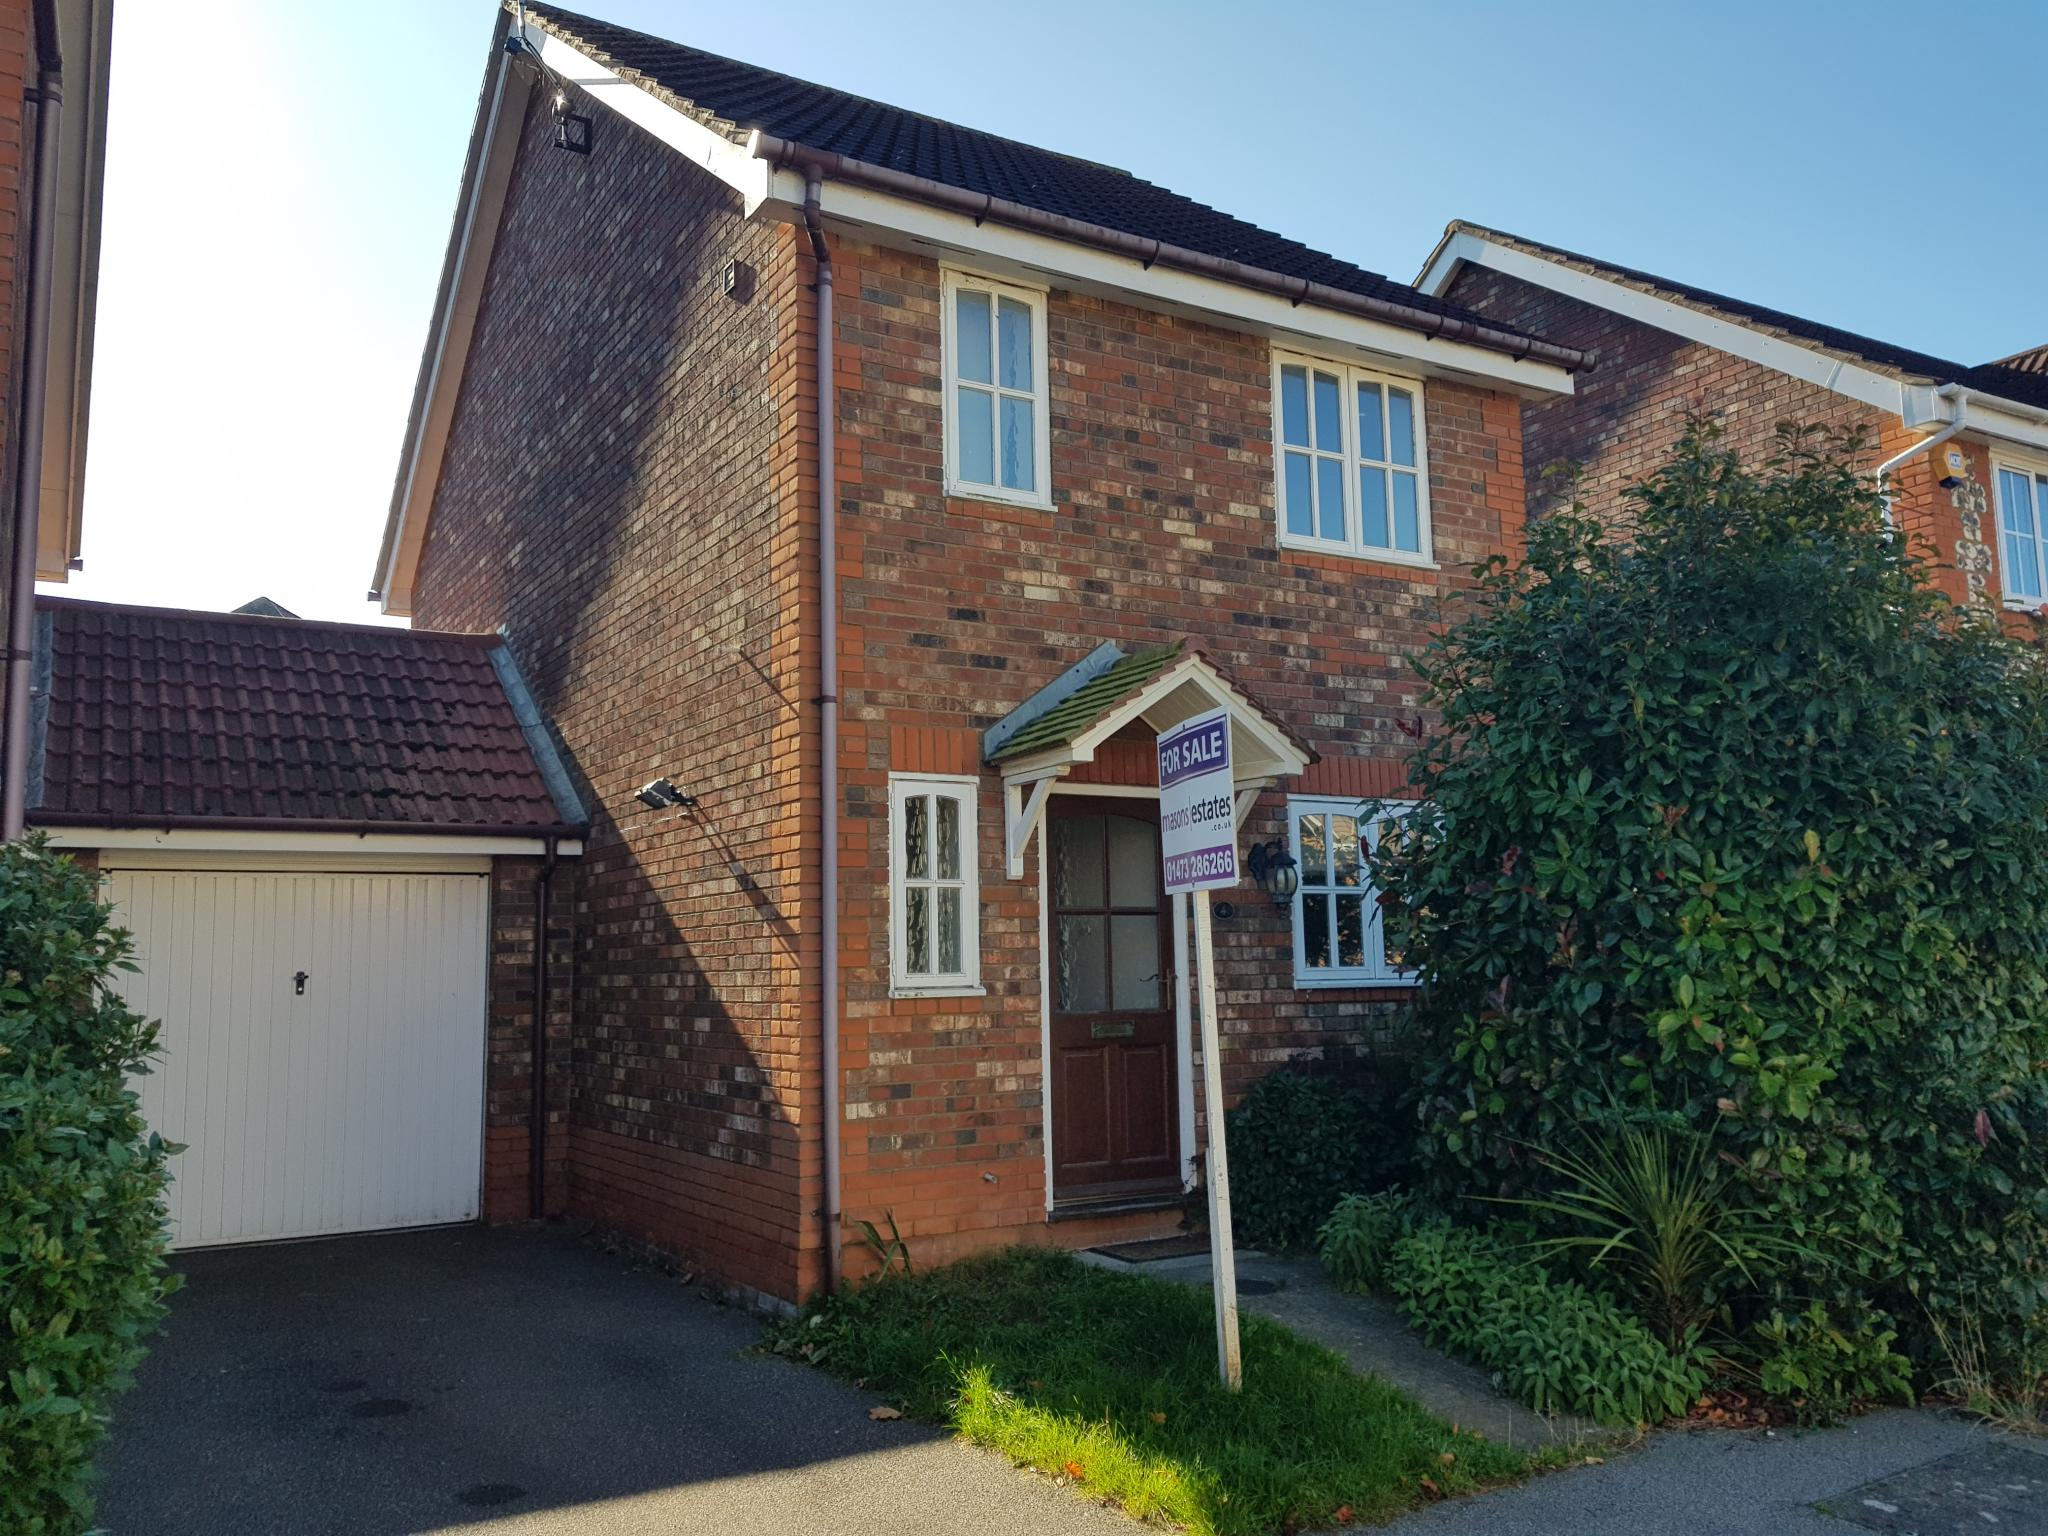 3 bedroom detached house SSTC in Ipswich - 1